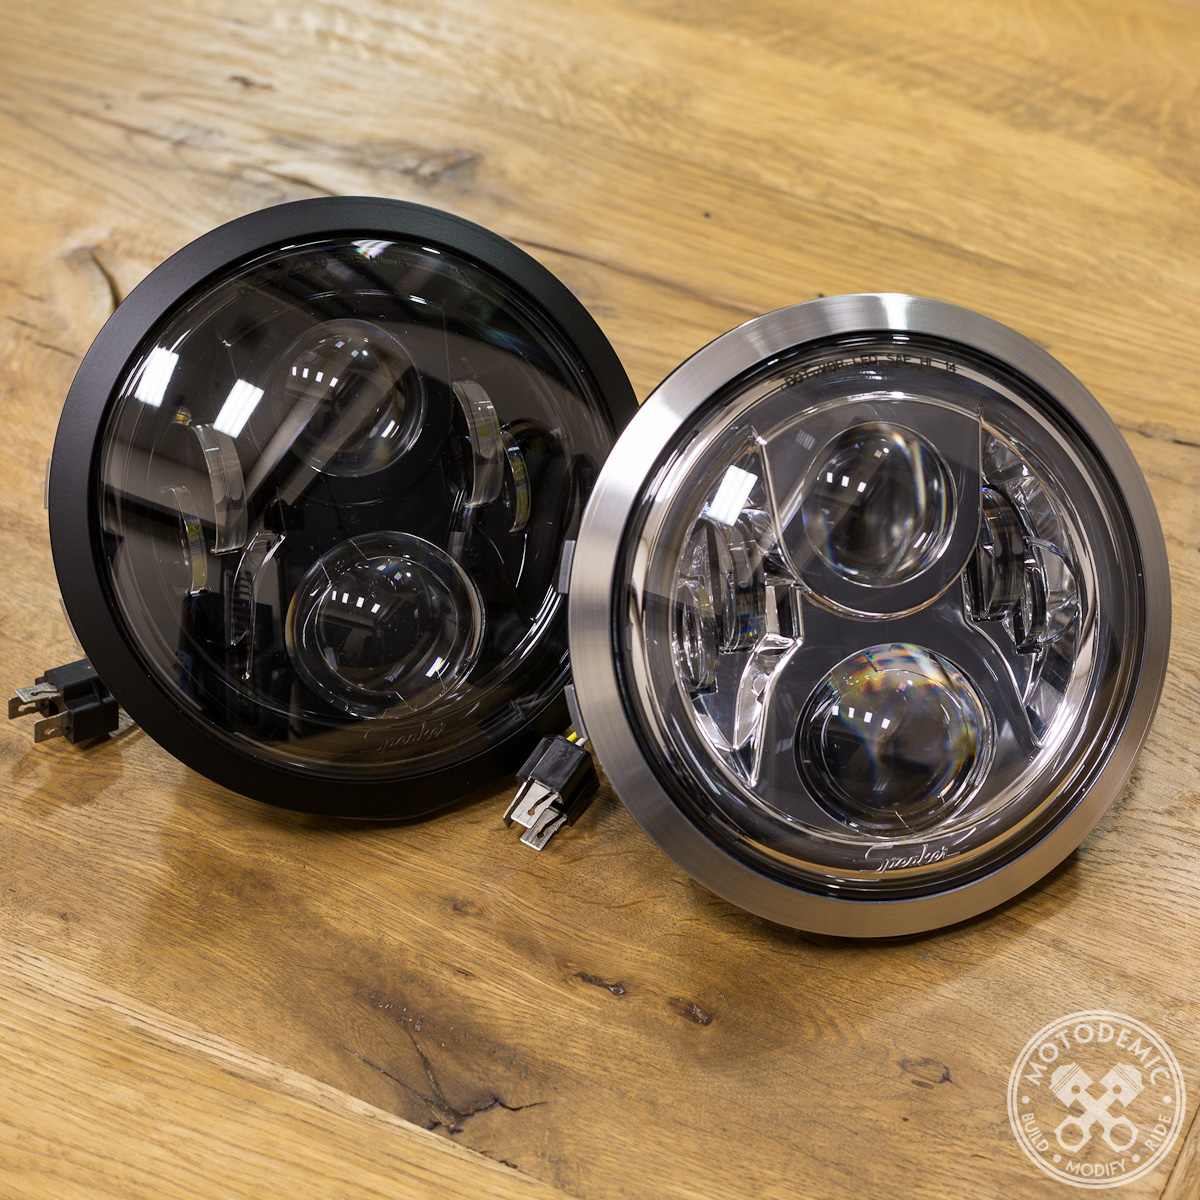 led headlight for ducati monster (93-08) • motodemic